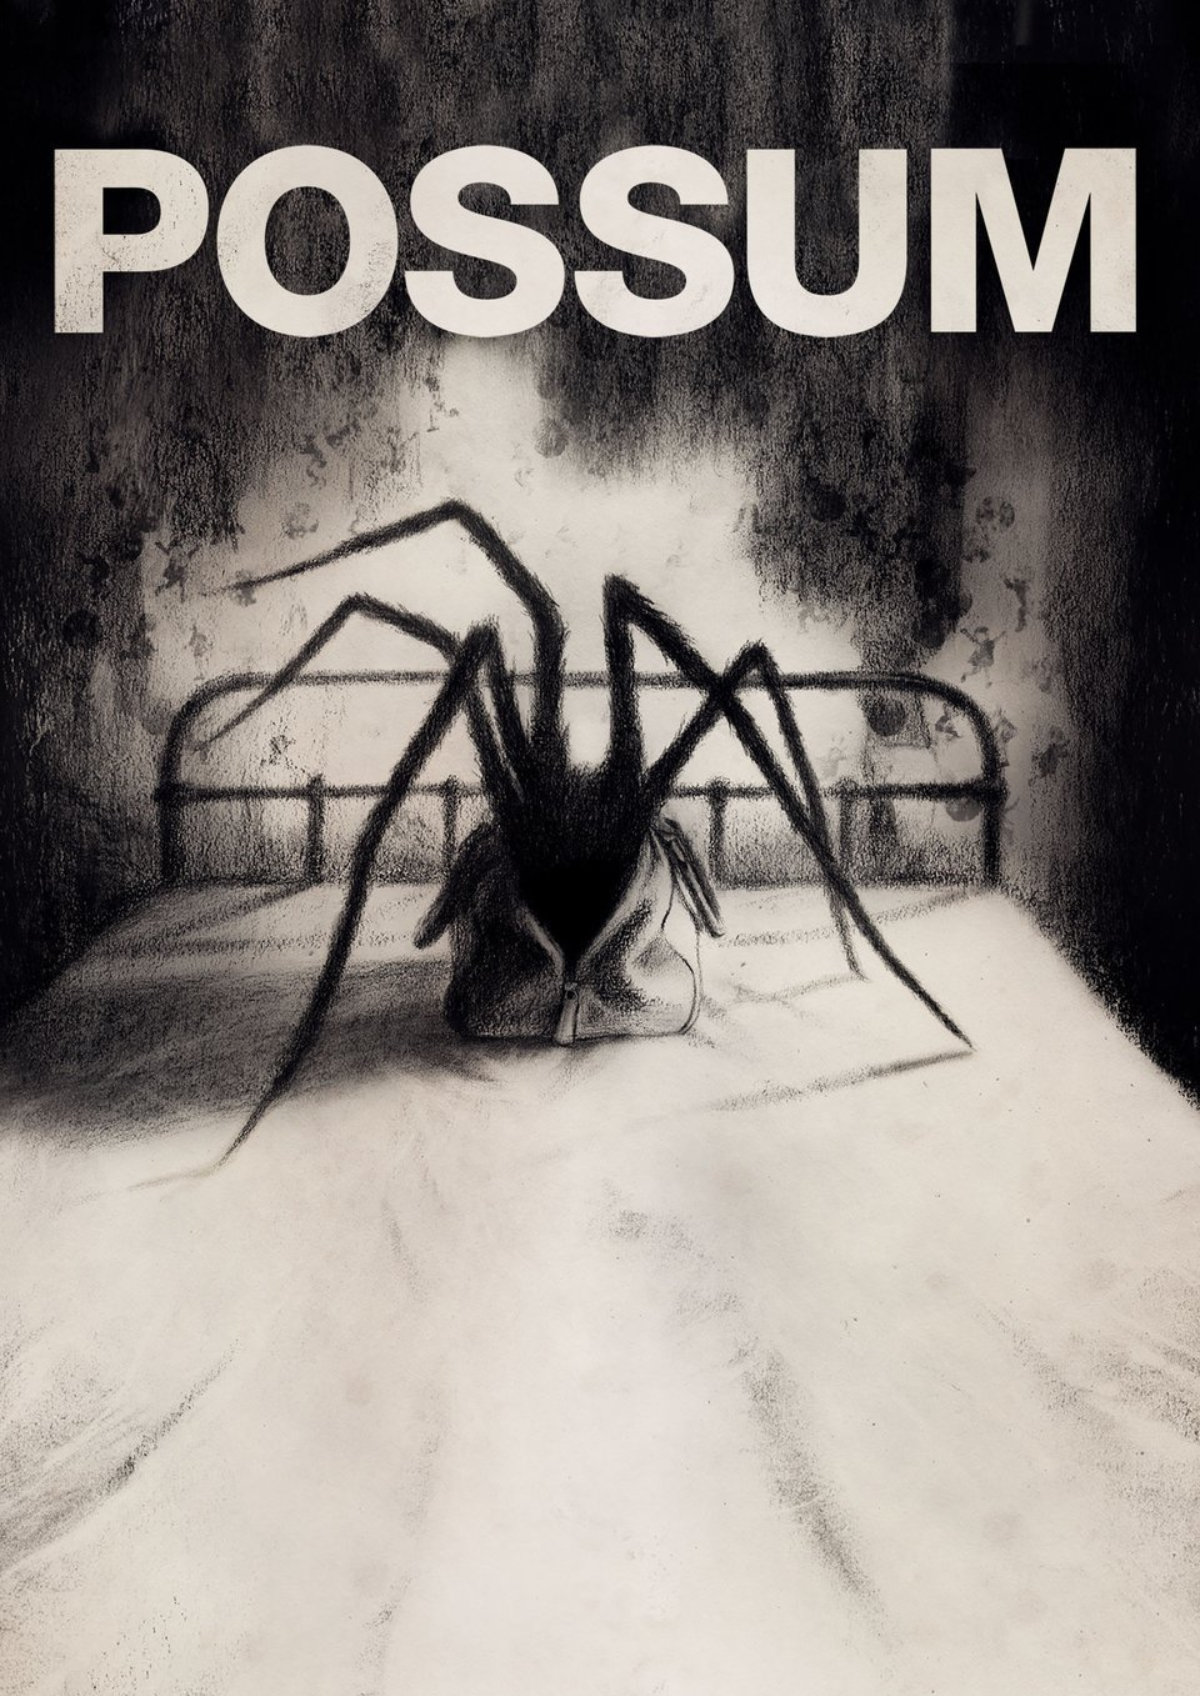 'Possum' movie poster